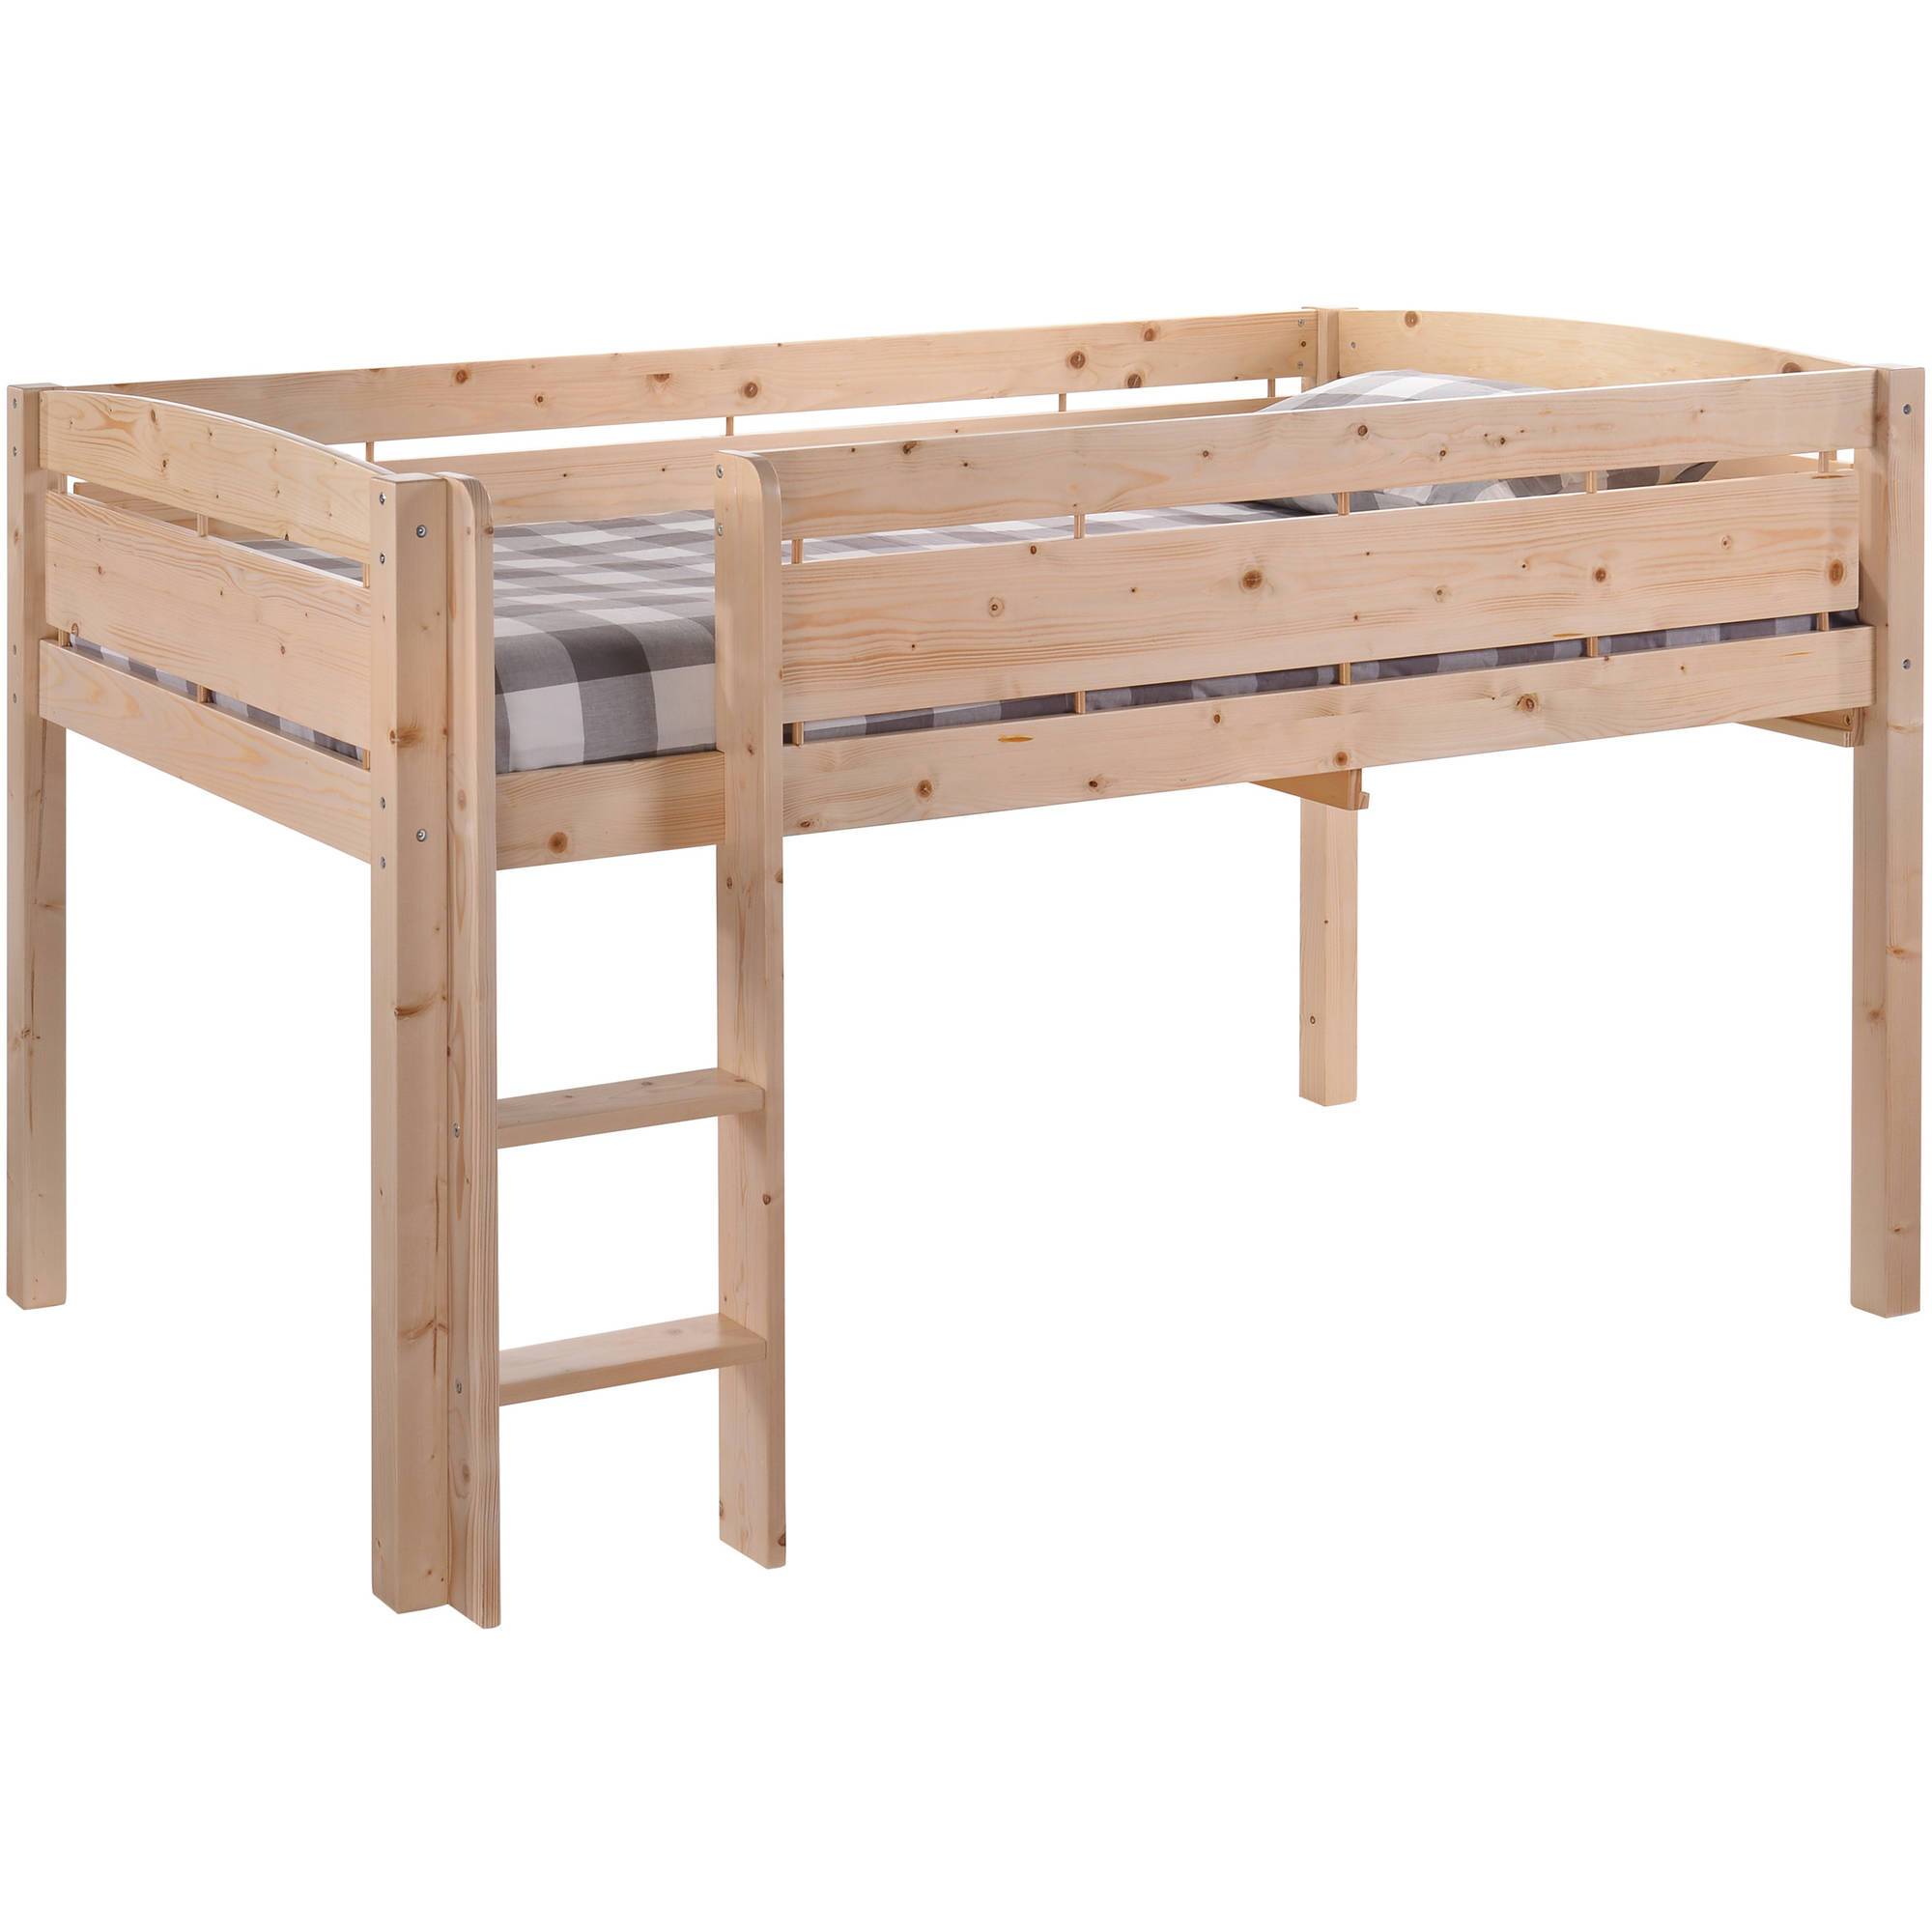 Cute Canwood Loft Bed | Fantastic Canwood Whistler Junior Loft Bed Cherry